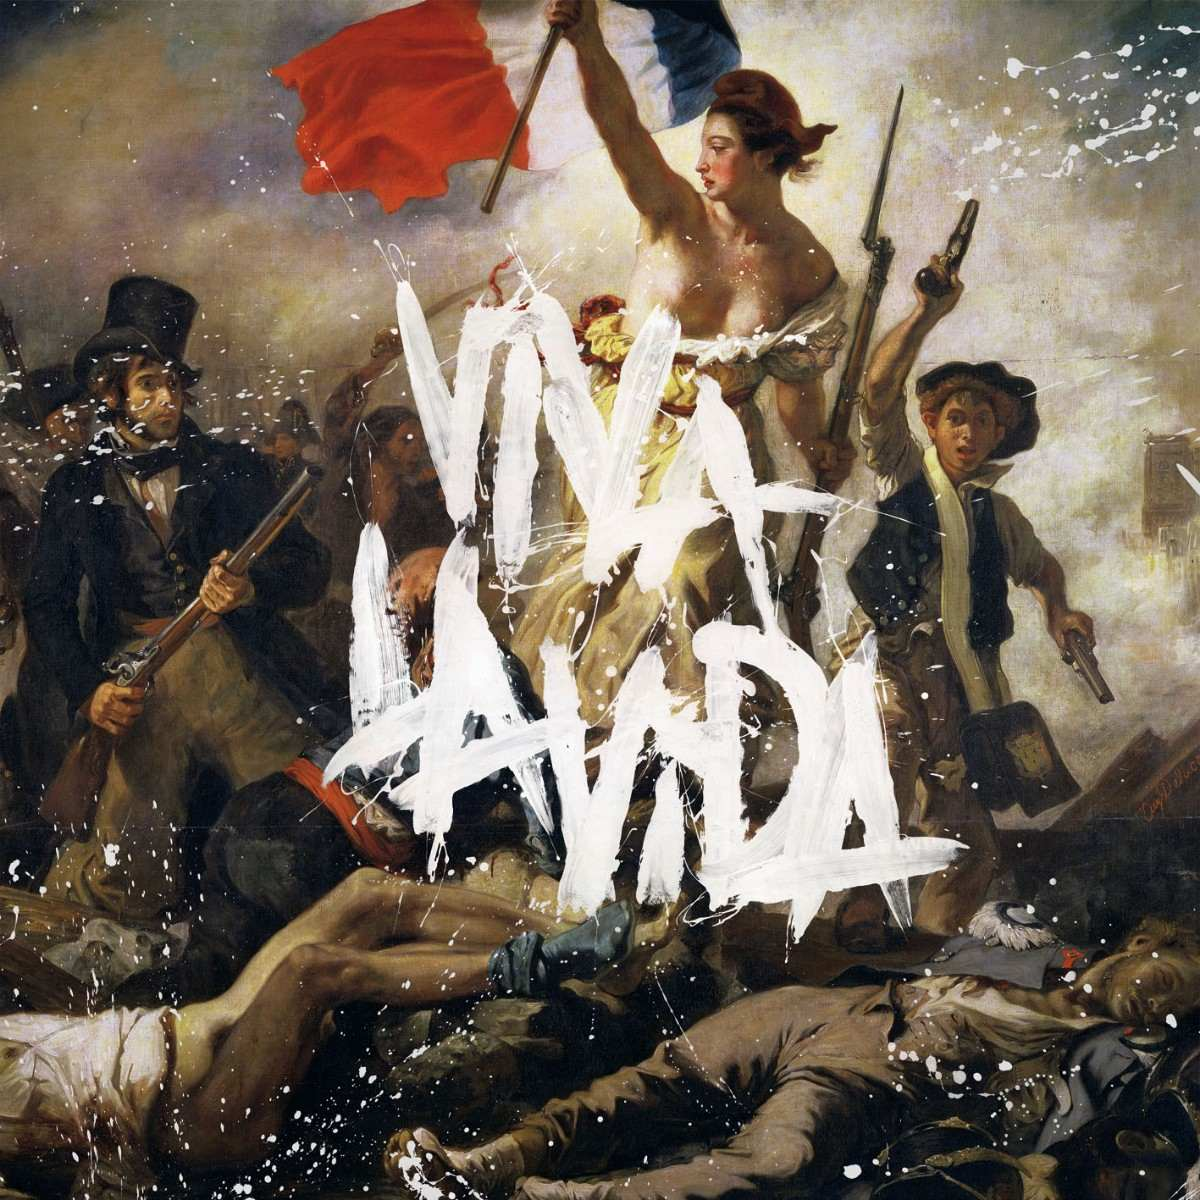 Liberty Leading The People, Cover of album Viva la Vida or Death and All His Friends by Coldplay, 2008. Design by Coldplay and Tappin Gofton